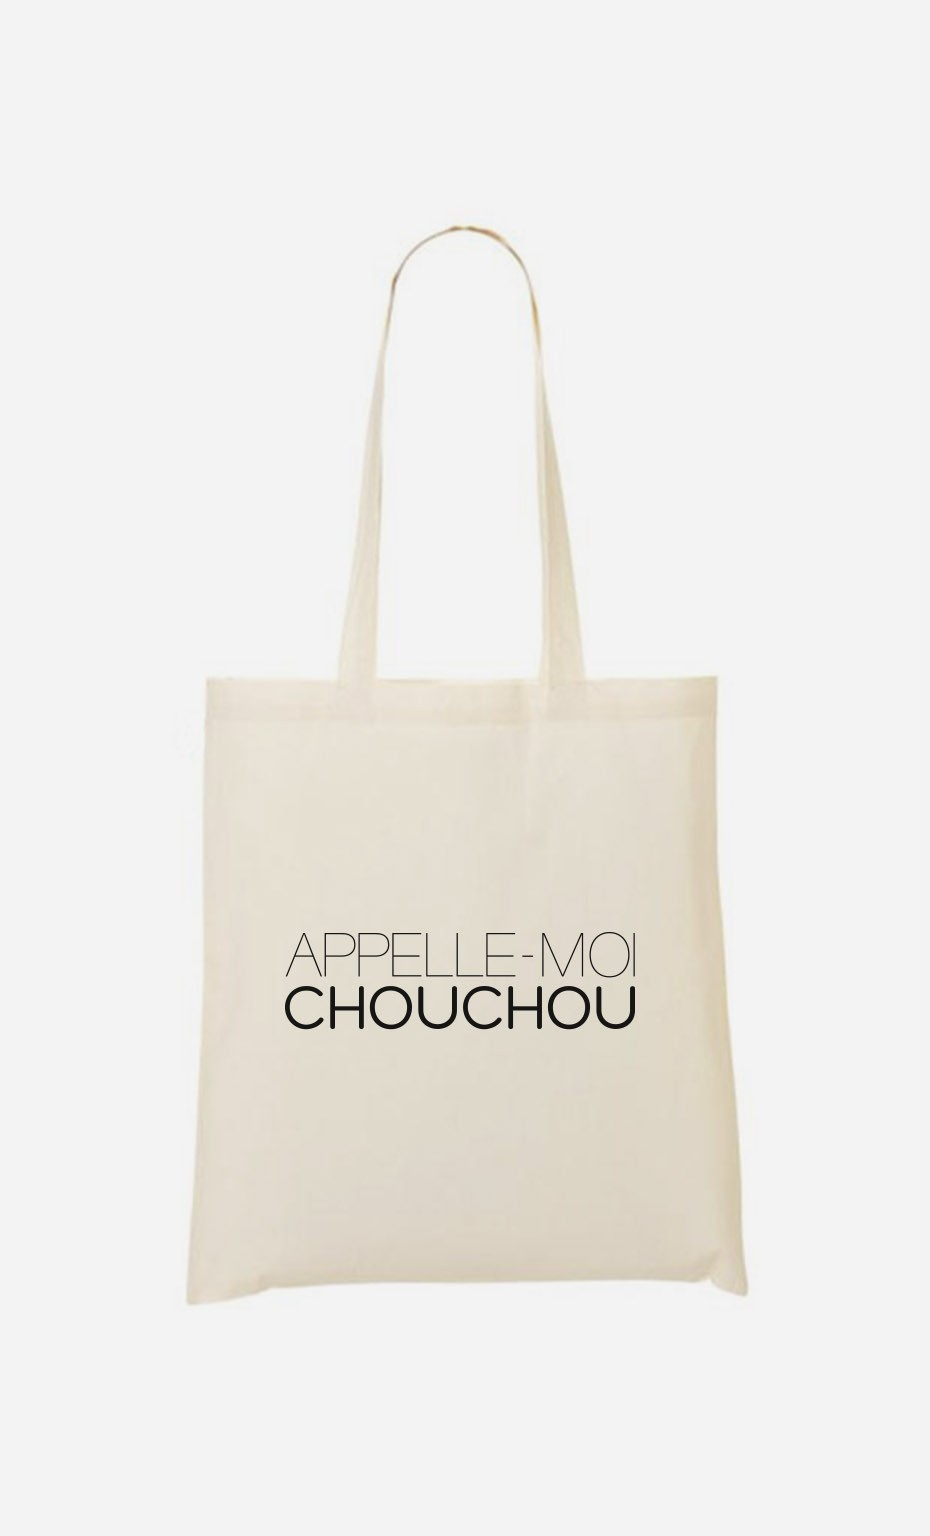 Tote Bag Appelle-Moi Chouchou